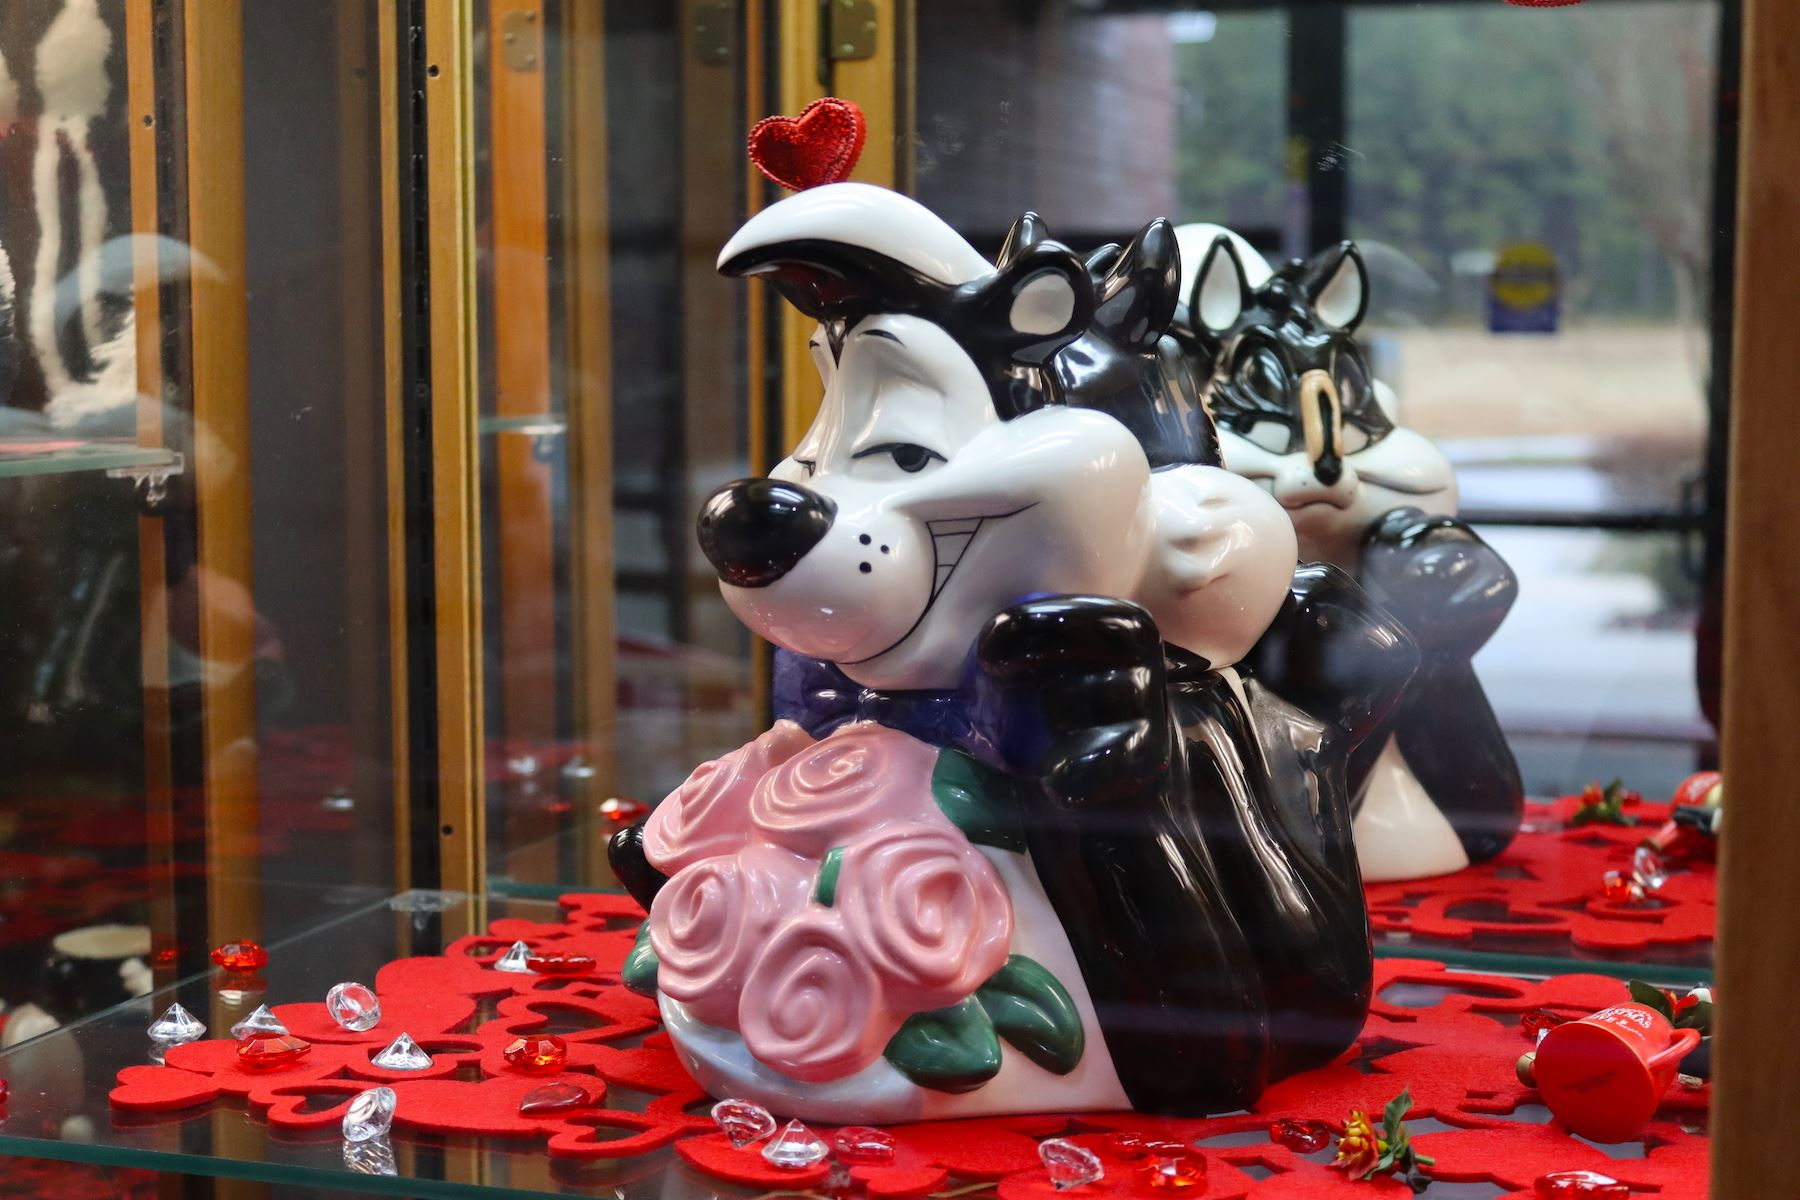 The Warner Bros. lovelorn cartoon skunk, Pepé Le Pew, is seen with a bunch of roses.